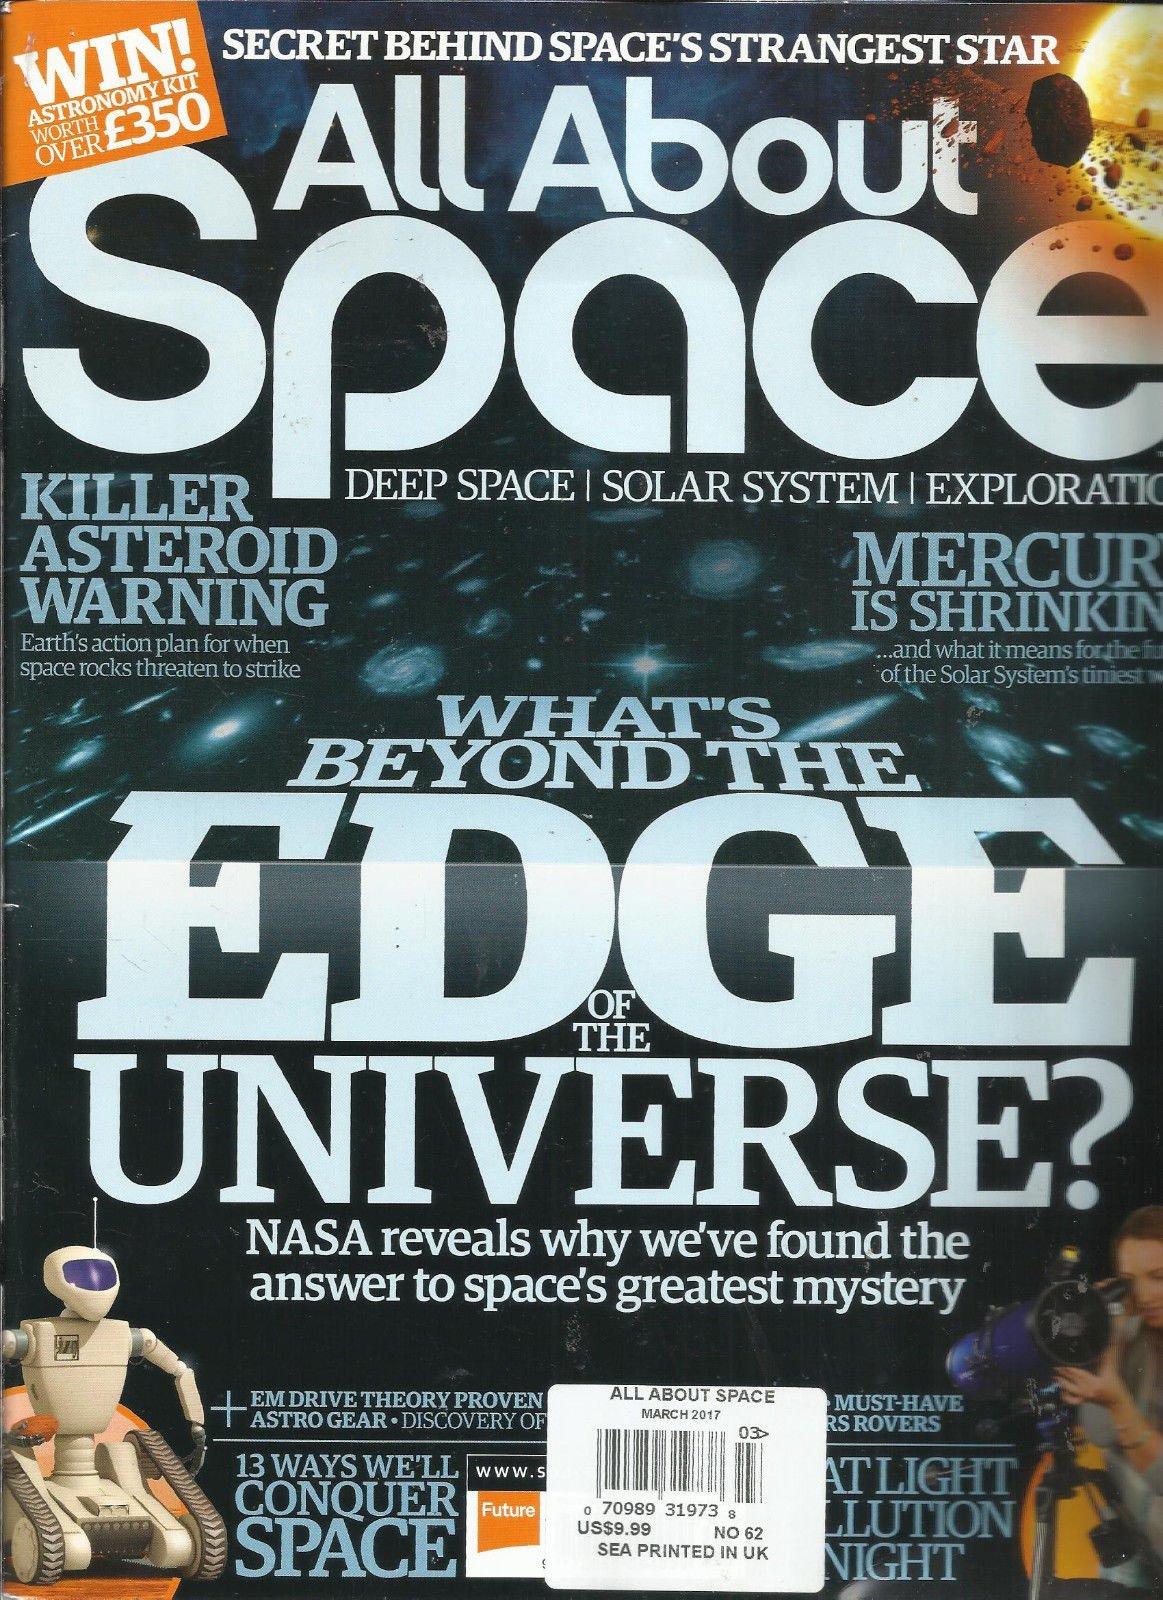 ALL ABOUT SPACE MAGAZINE, MARCH, 2017 DEEP SPACE SOLAR SYSTEM EXPLORATION